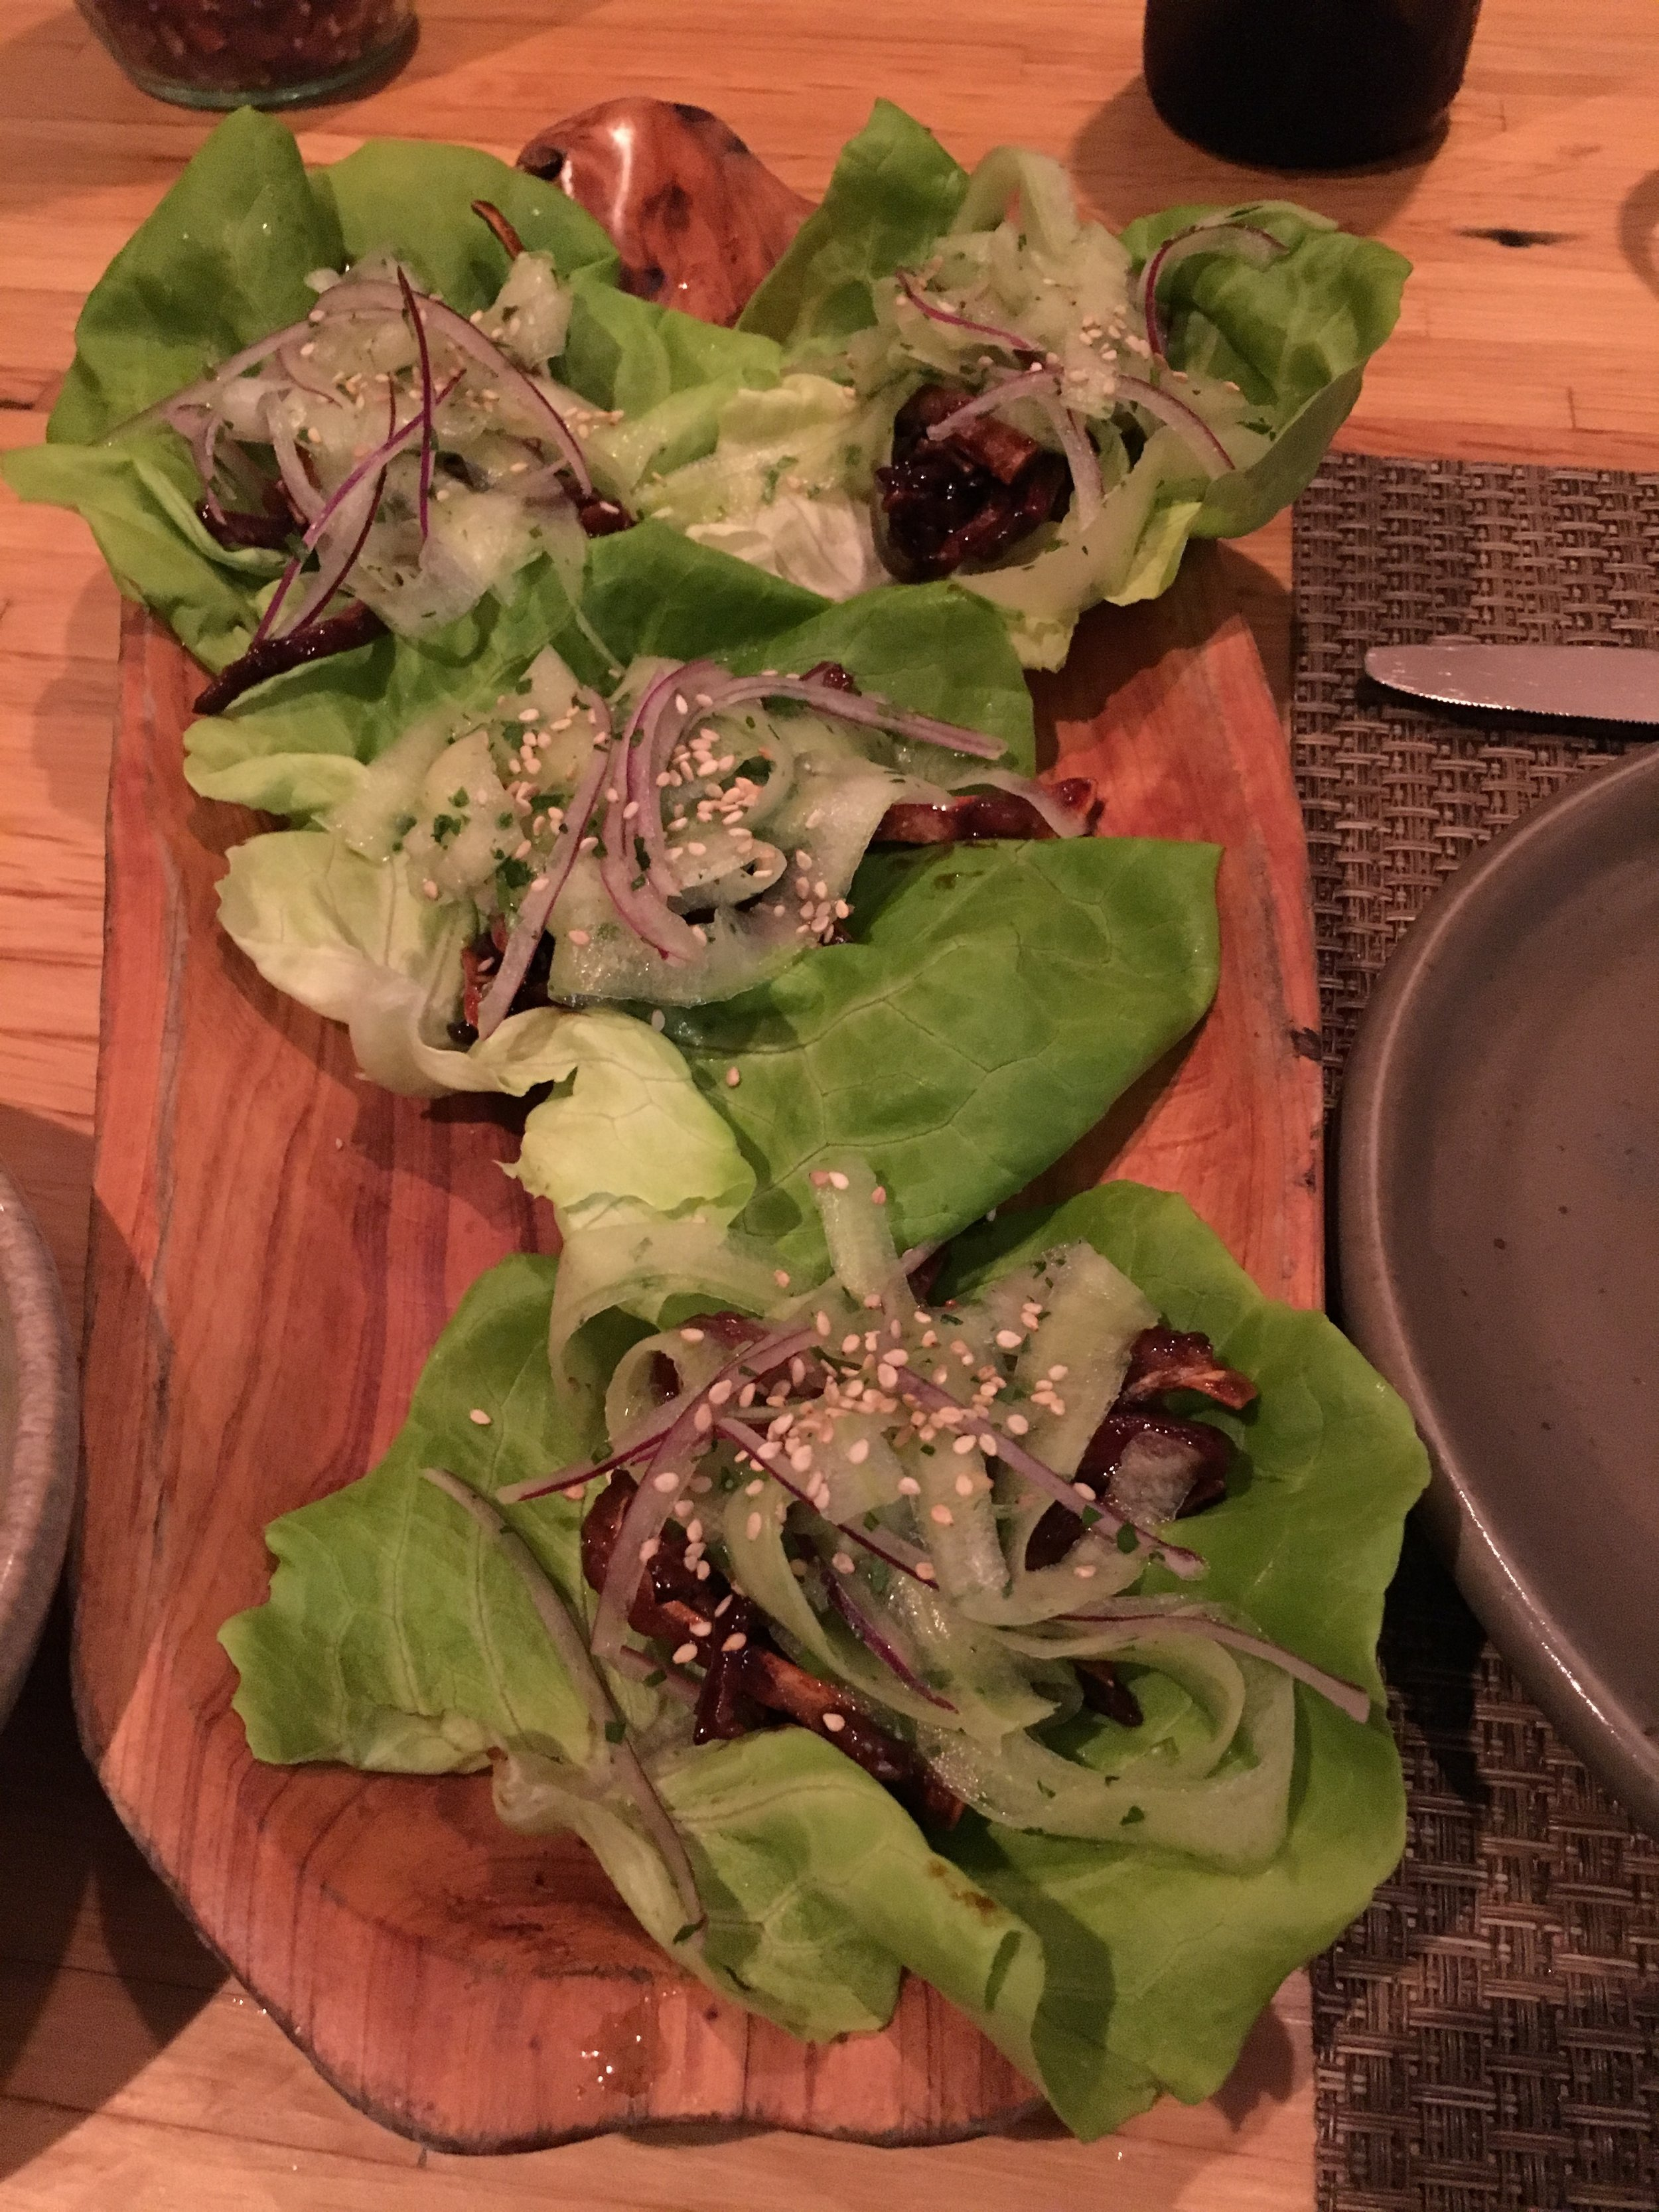 Crunchy, salty pig ear lettuce wraps. By far the most interesting dish I ate this trip.